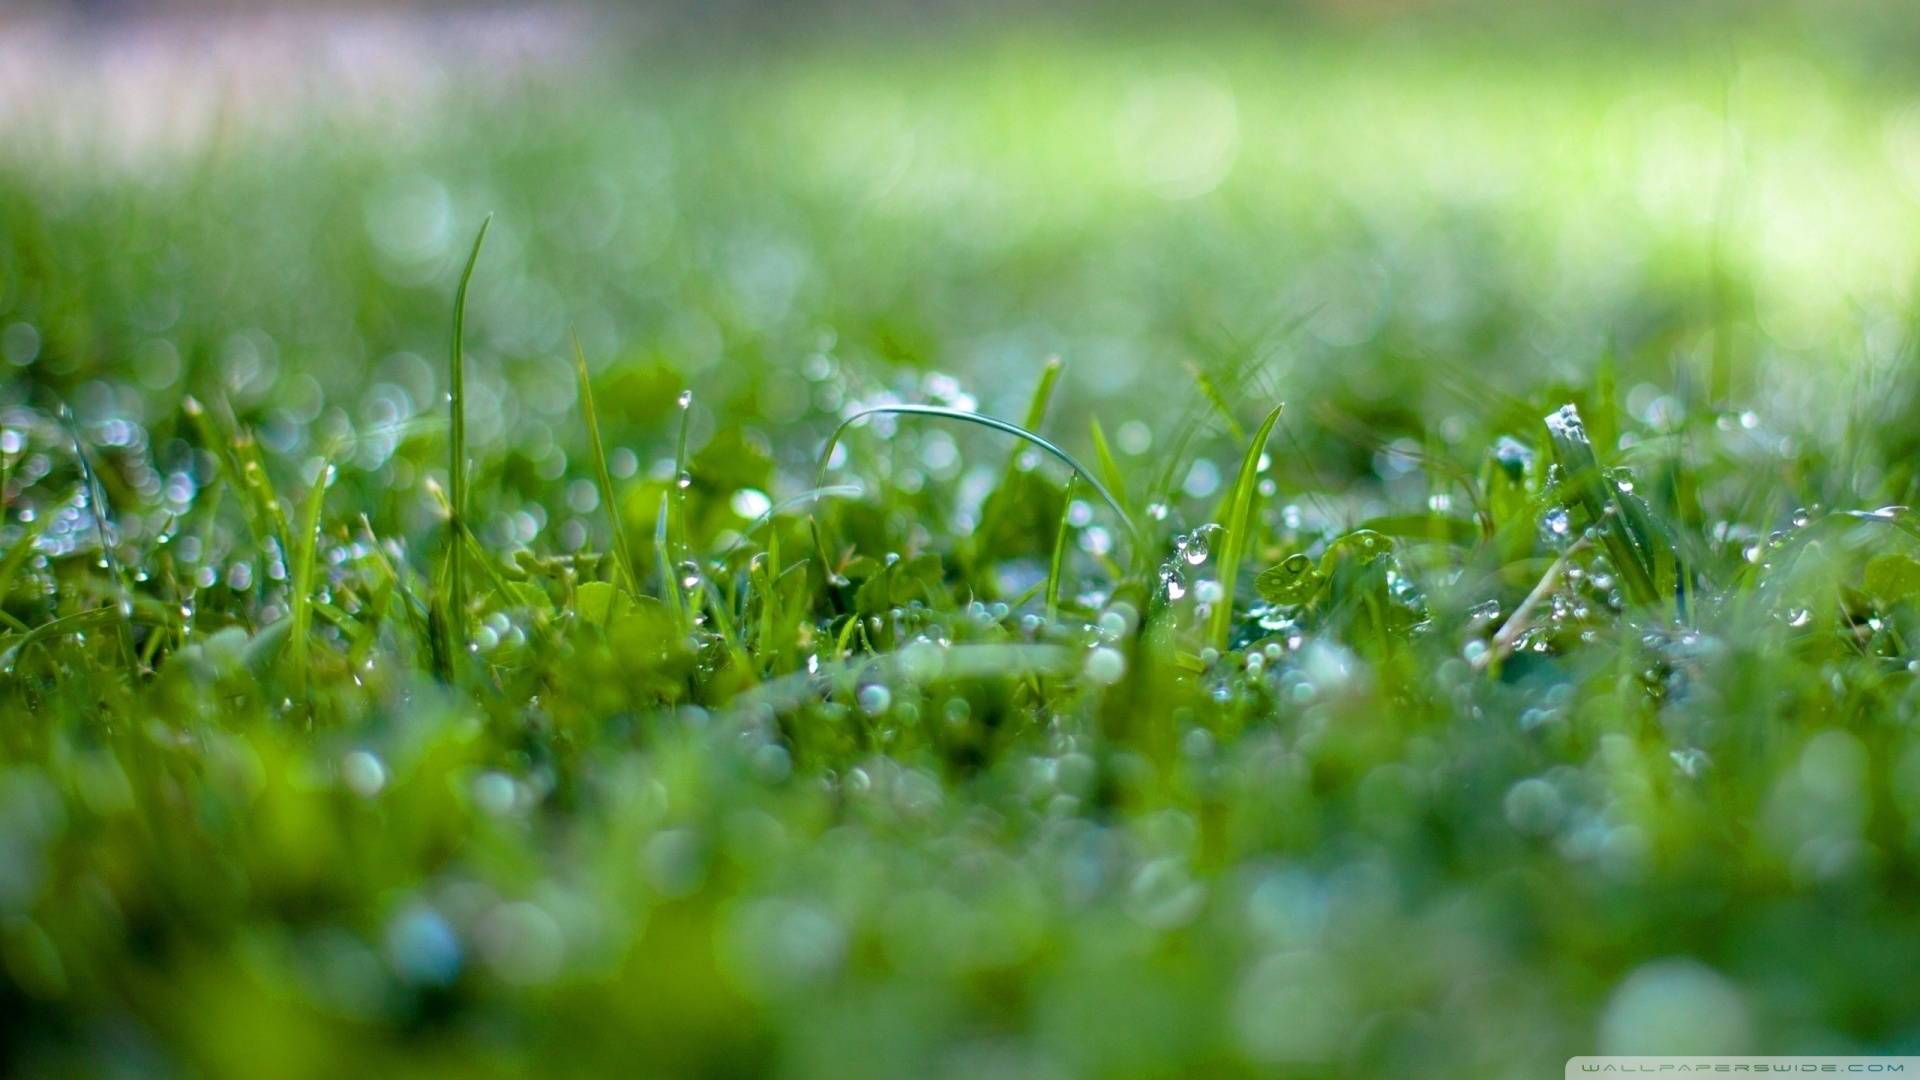 1920x1080 Wet Grass Bokeh 2 wallpaper